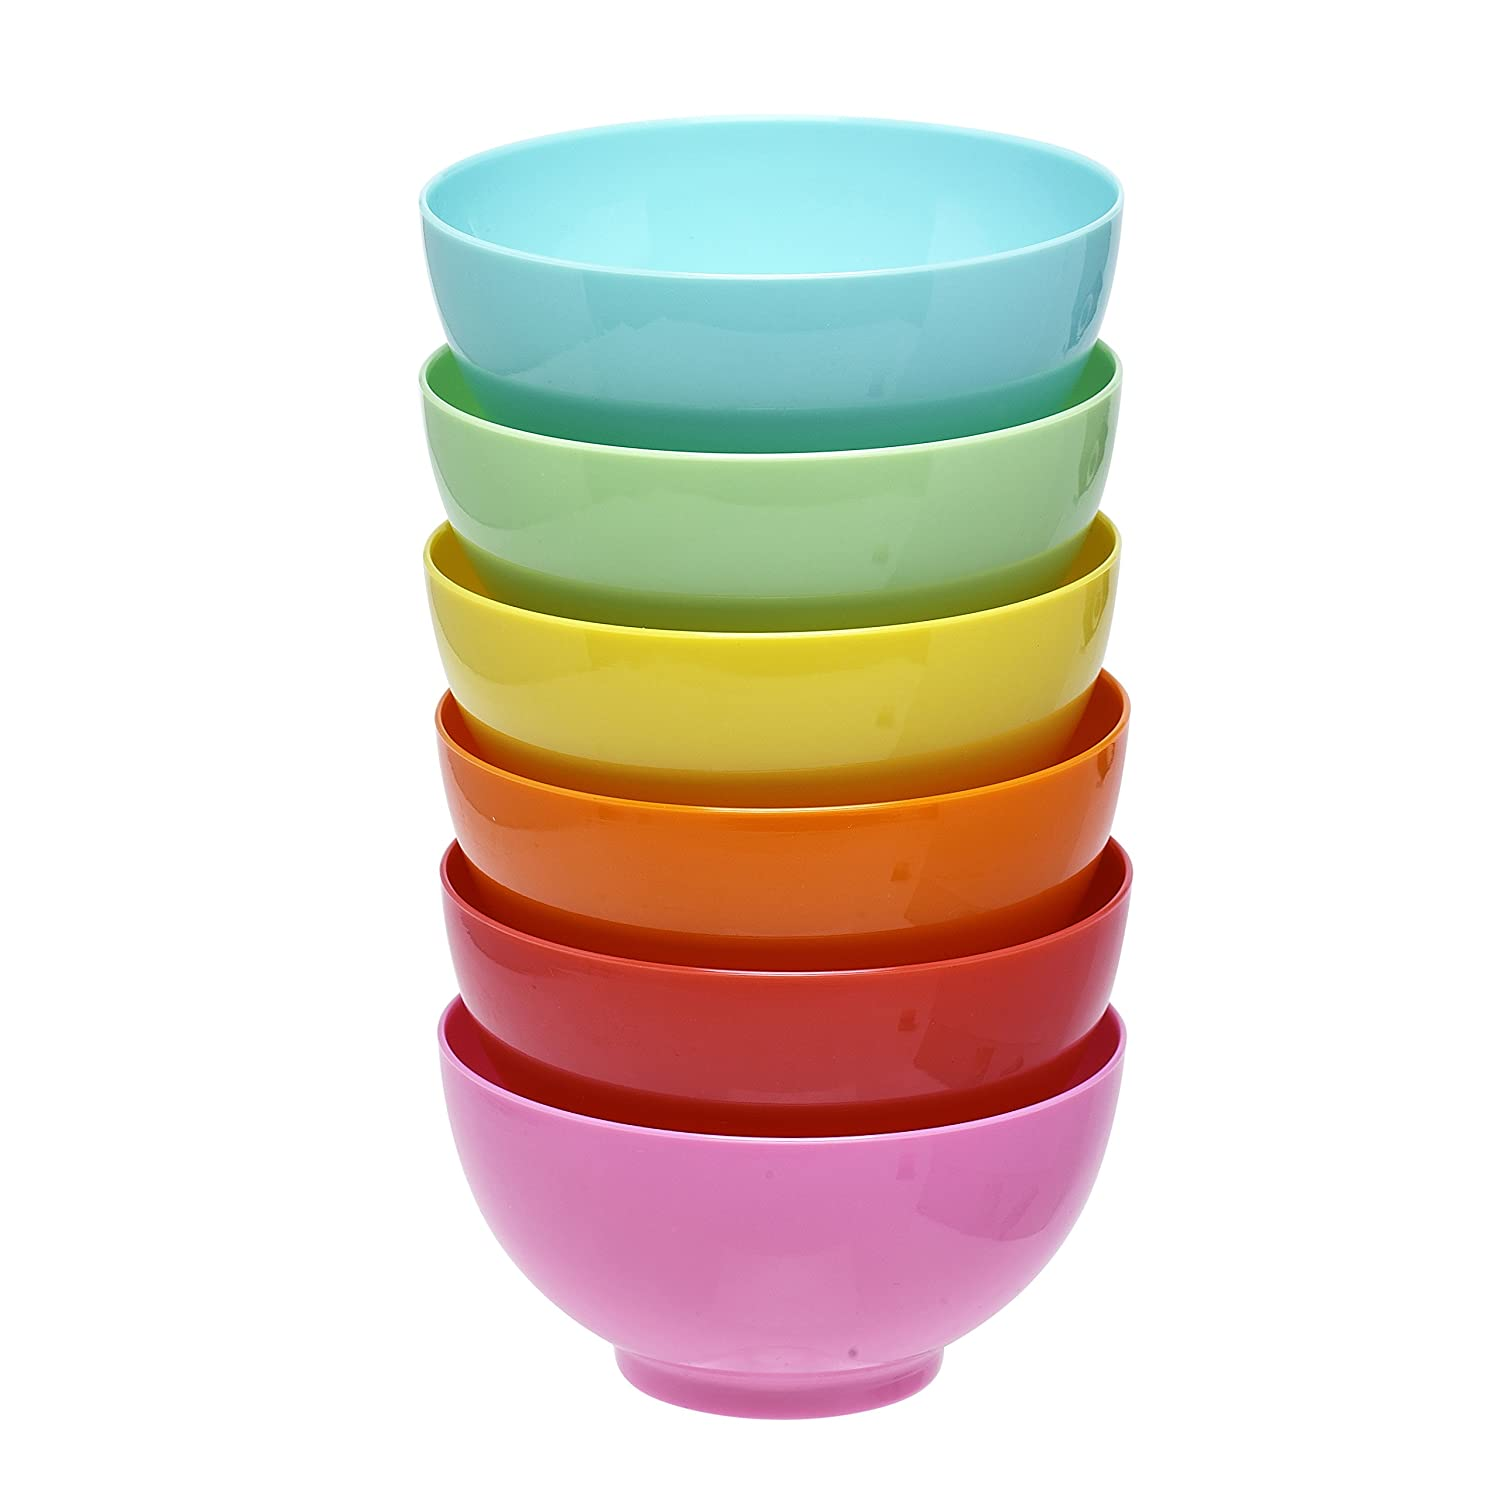 6 PC MULTI COLOUR 12.5X6.5 CM BOWLS KITCHEN CEREAL KIDS SNACKS CONDIMENTS SERVING CIRCULAR 400ML COOKING SOUP